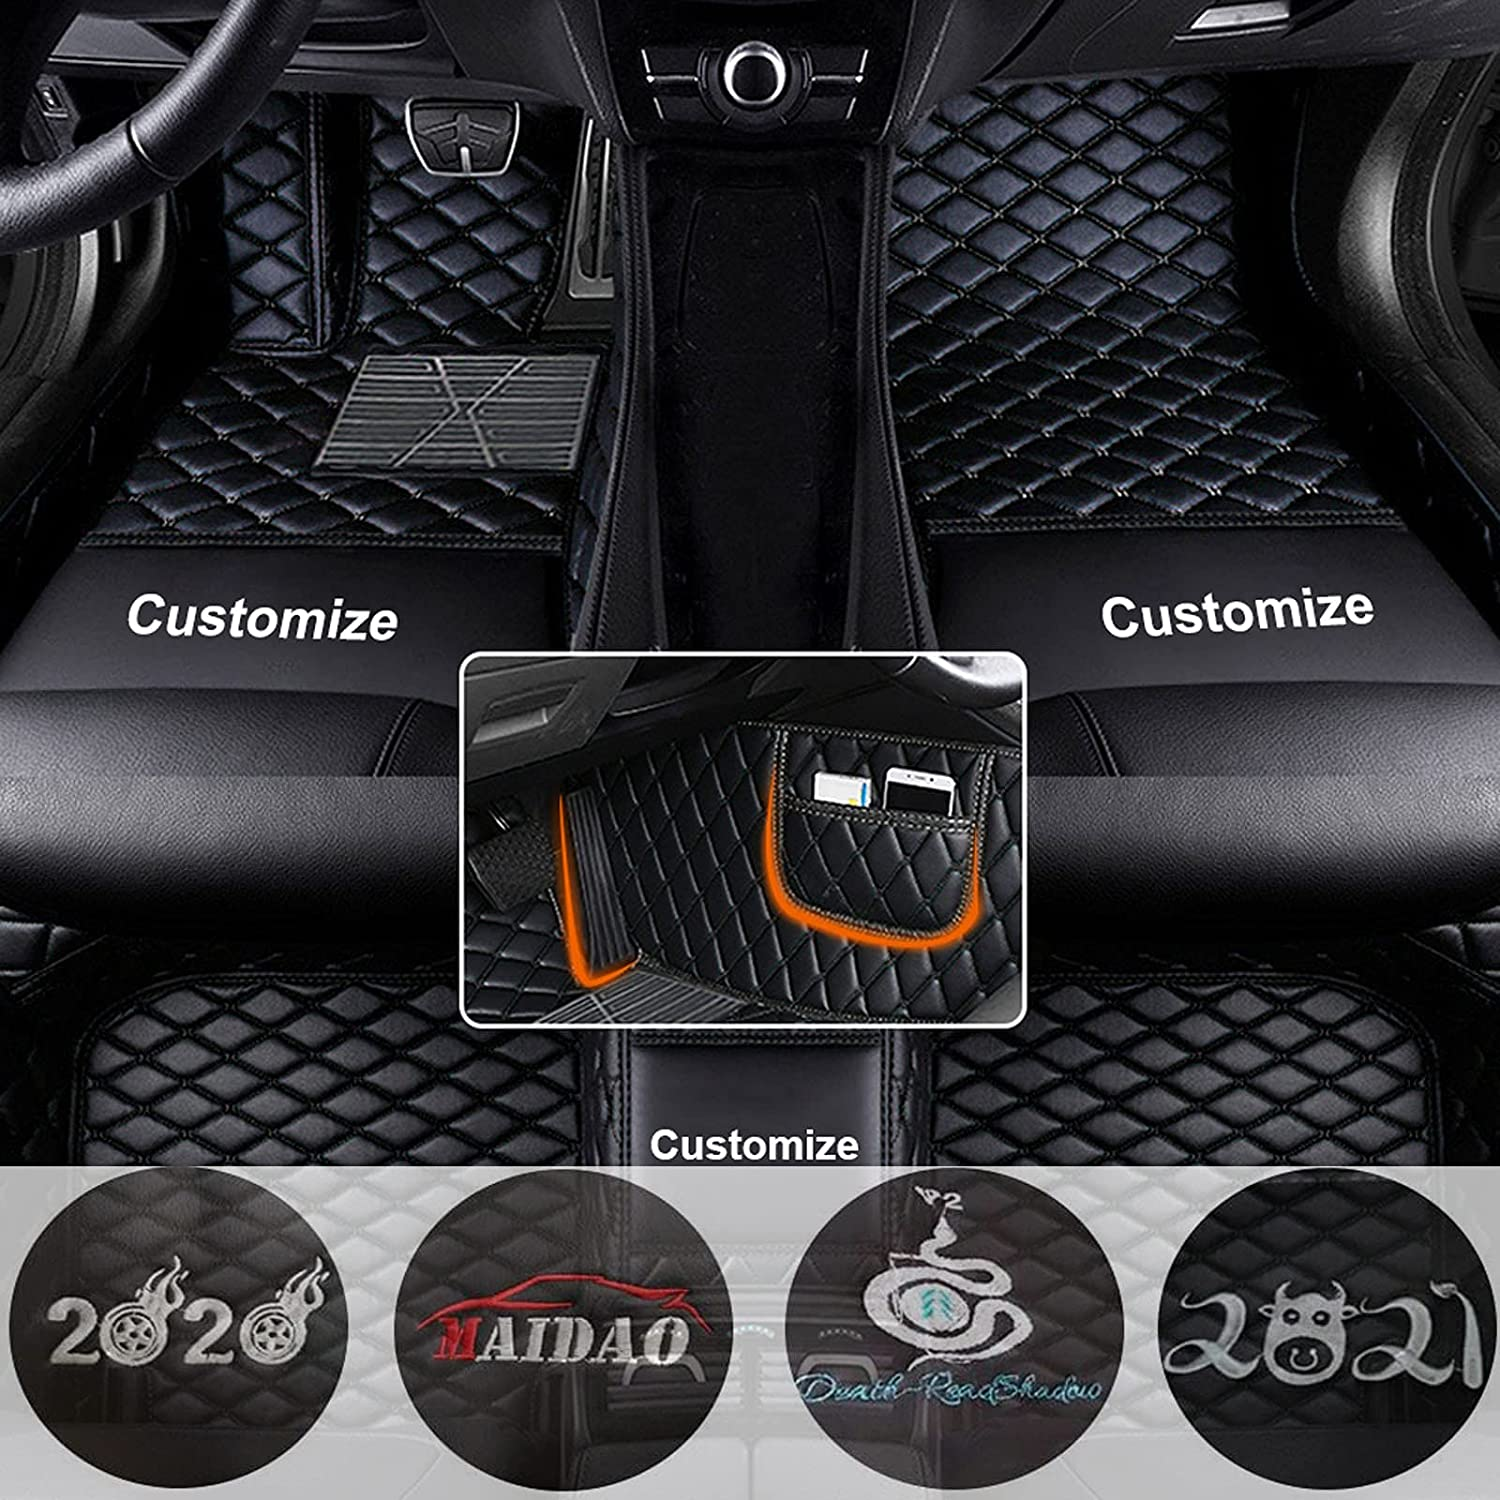 quality assurance Maidao Custom Car Floor Mats Fit fo Ford GMC In a popularity Genesis for